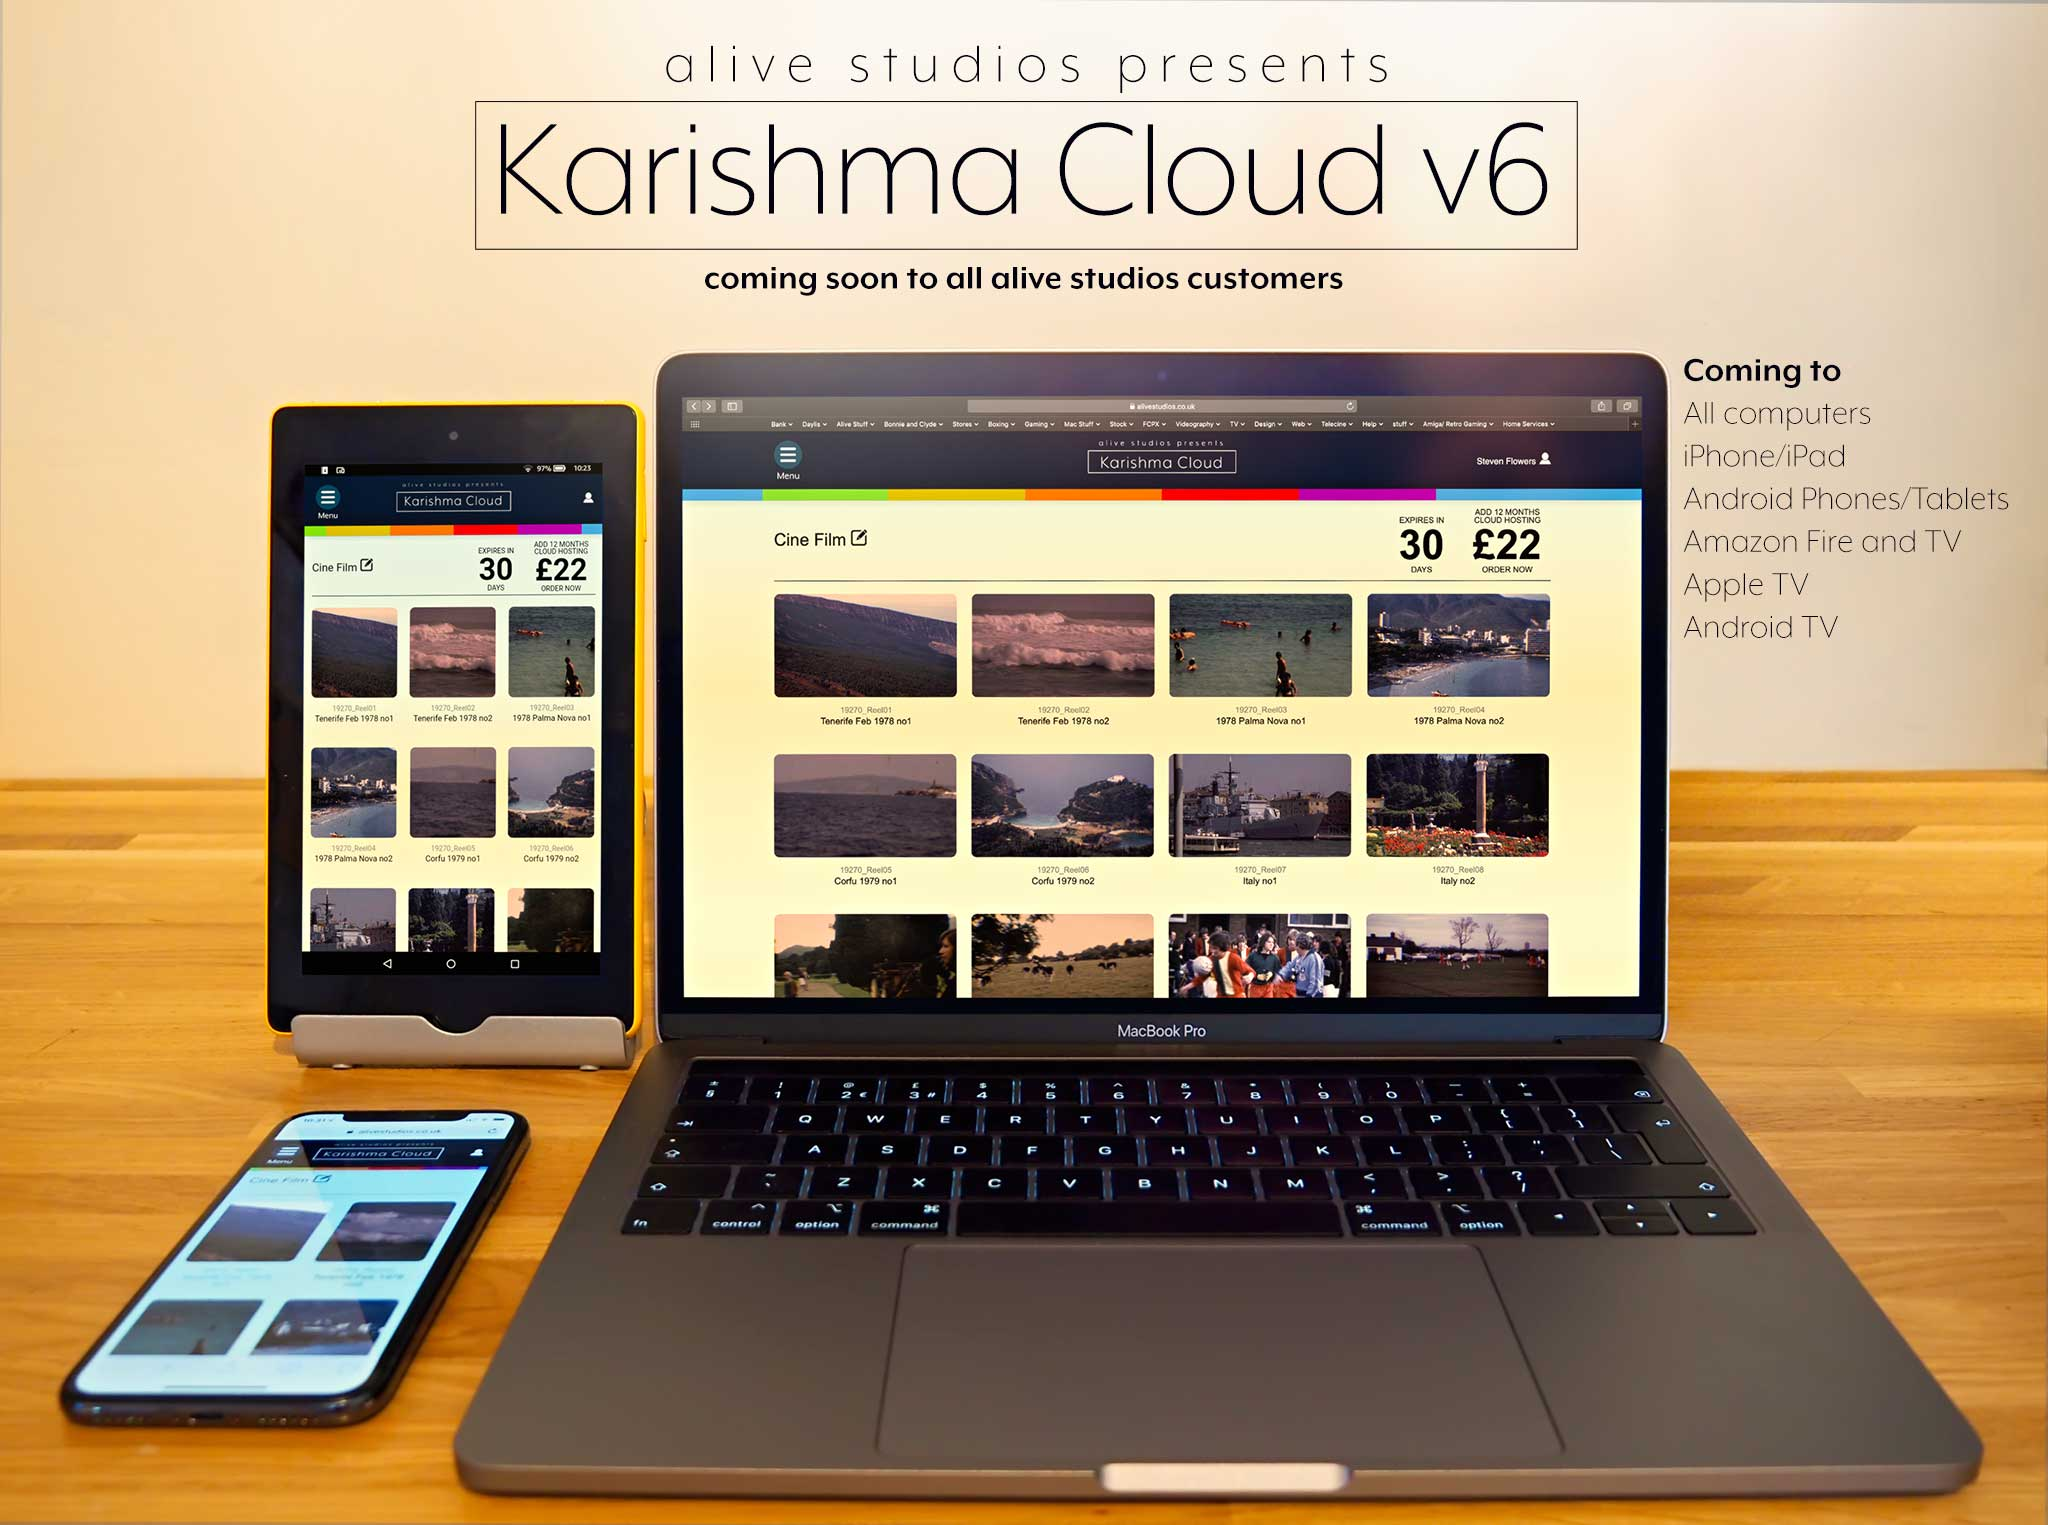 Karishma Cloud v6 Coming Soon